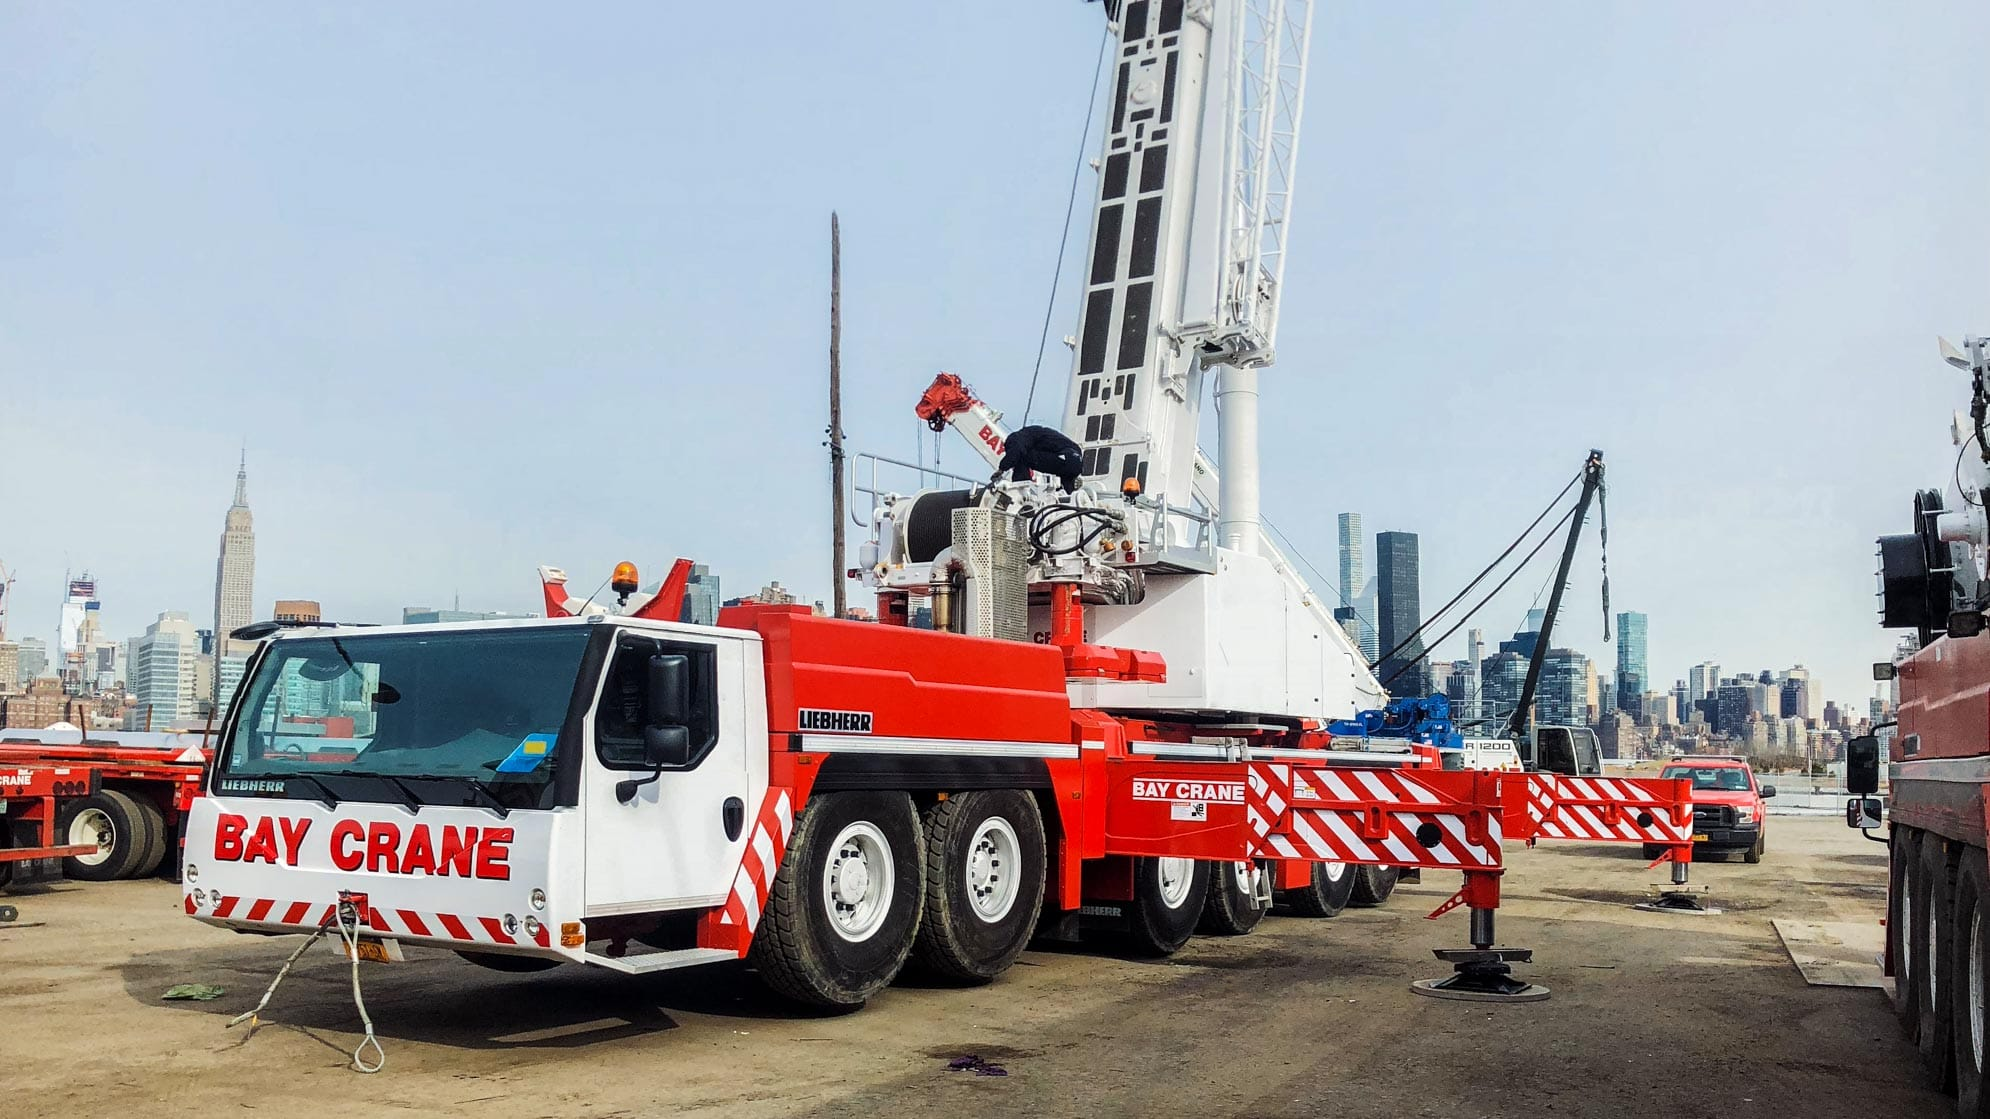 LTM 1300.6/2 all terrain crane with a hydraulic expandable